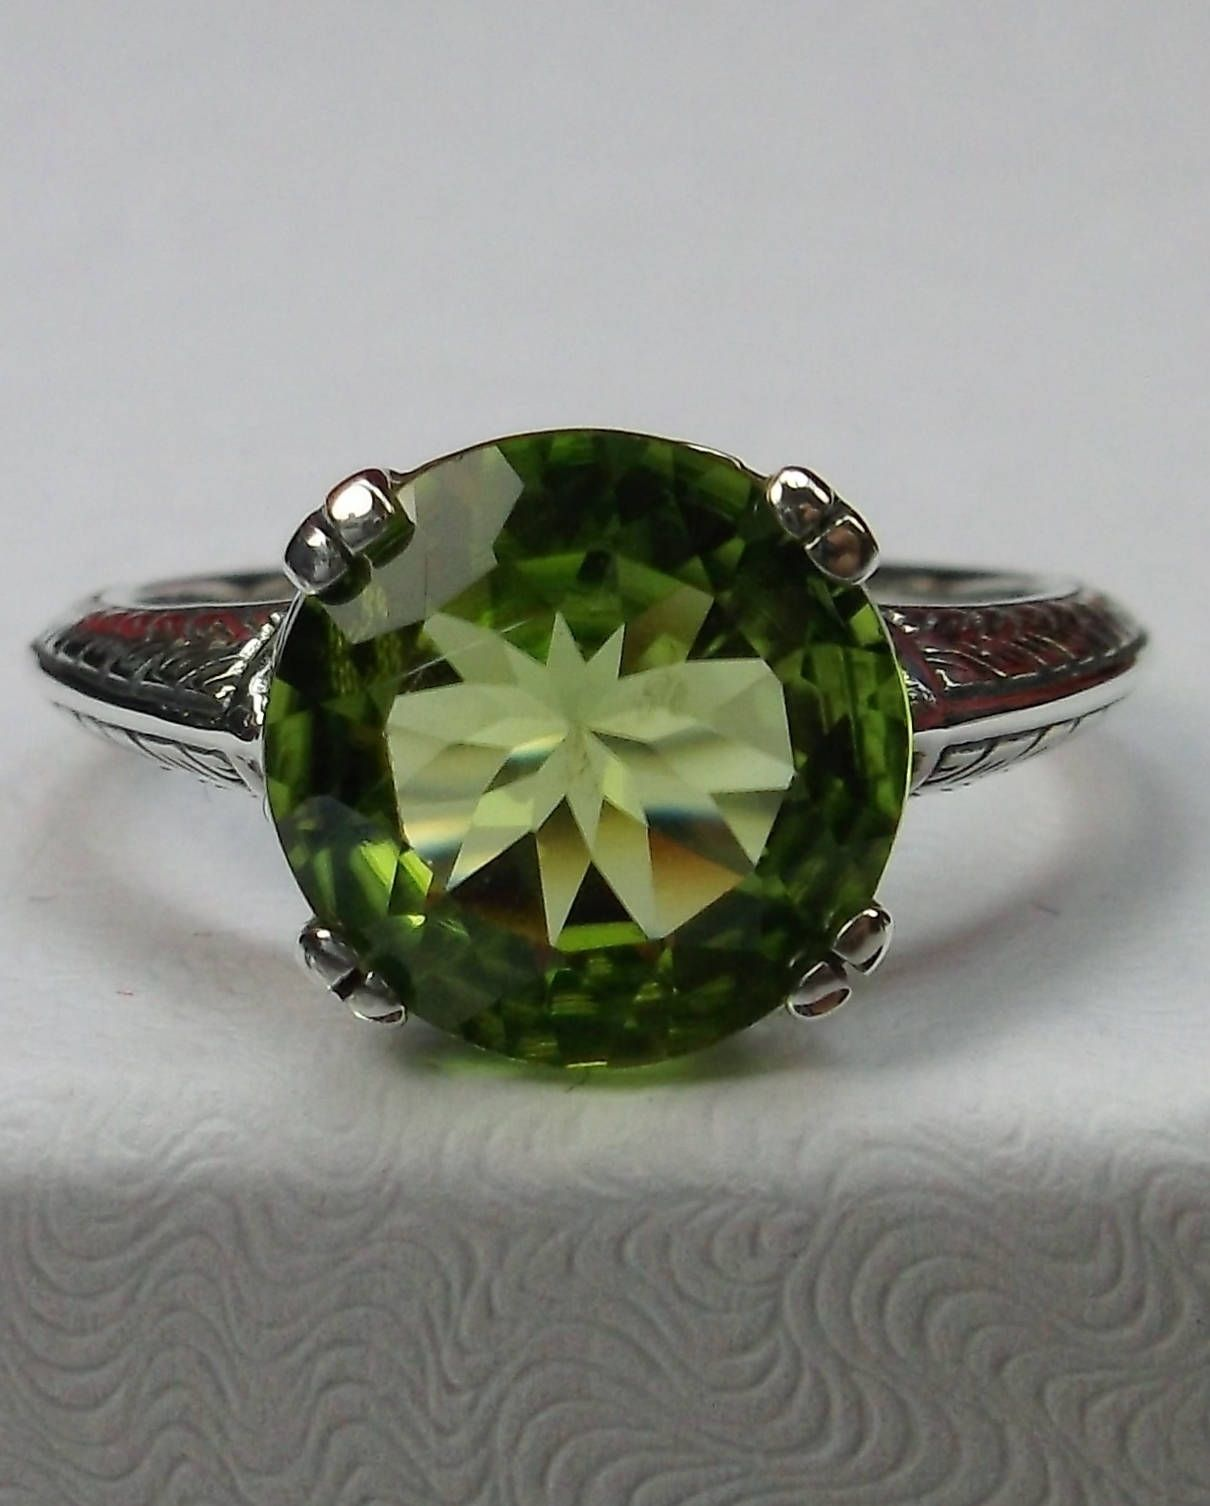 Natural Peridot Ring Green Gemstone Ring Sterling Silver Ring Pear Shape Green Peridot Gemstone Silver Ring Vintage Gift Ring For Her